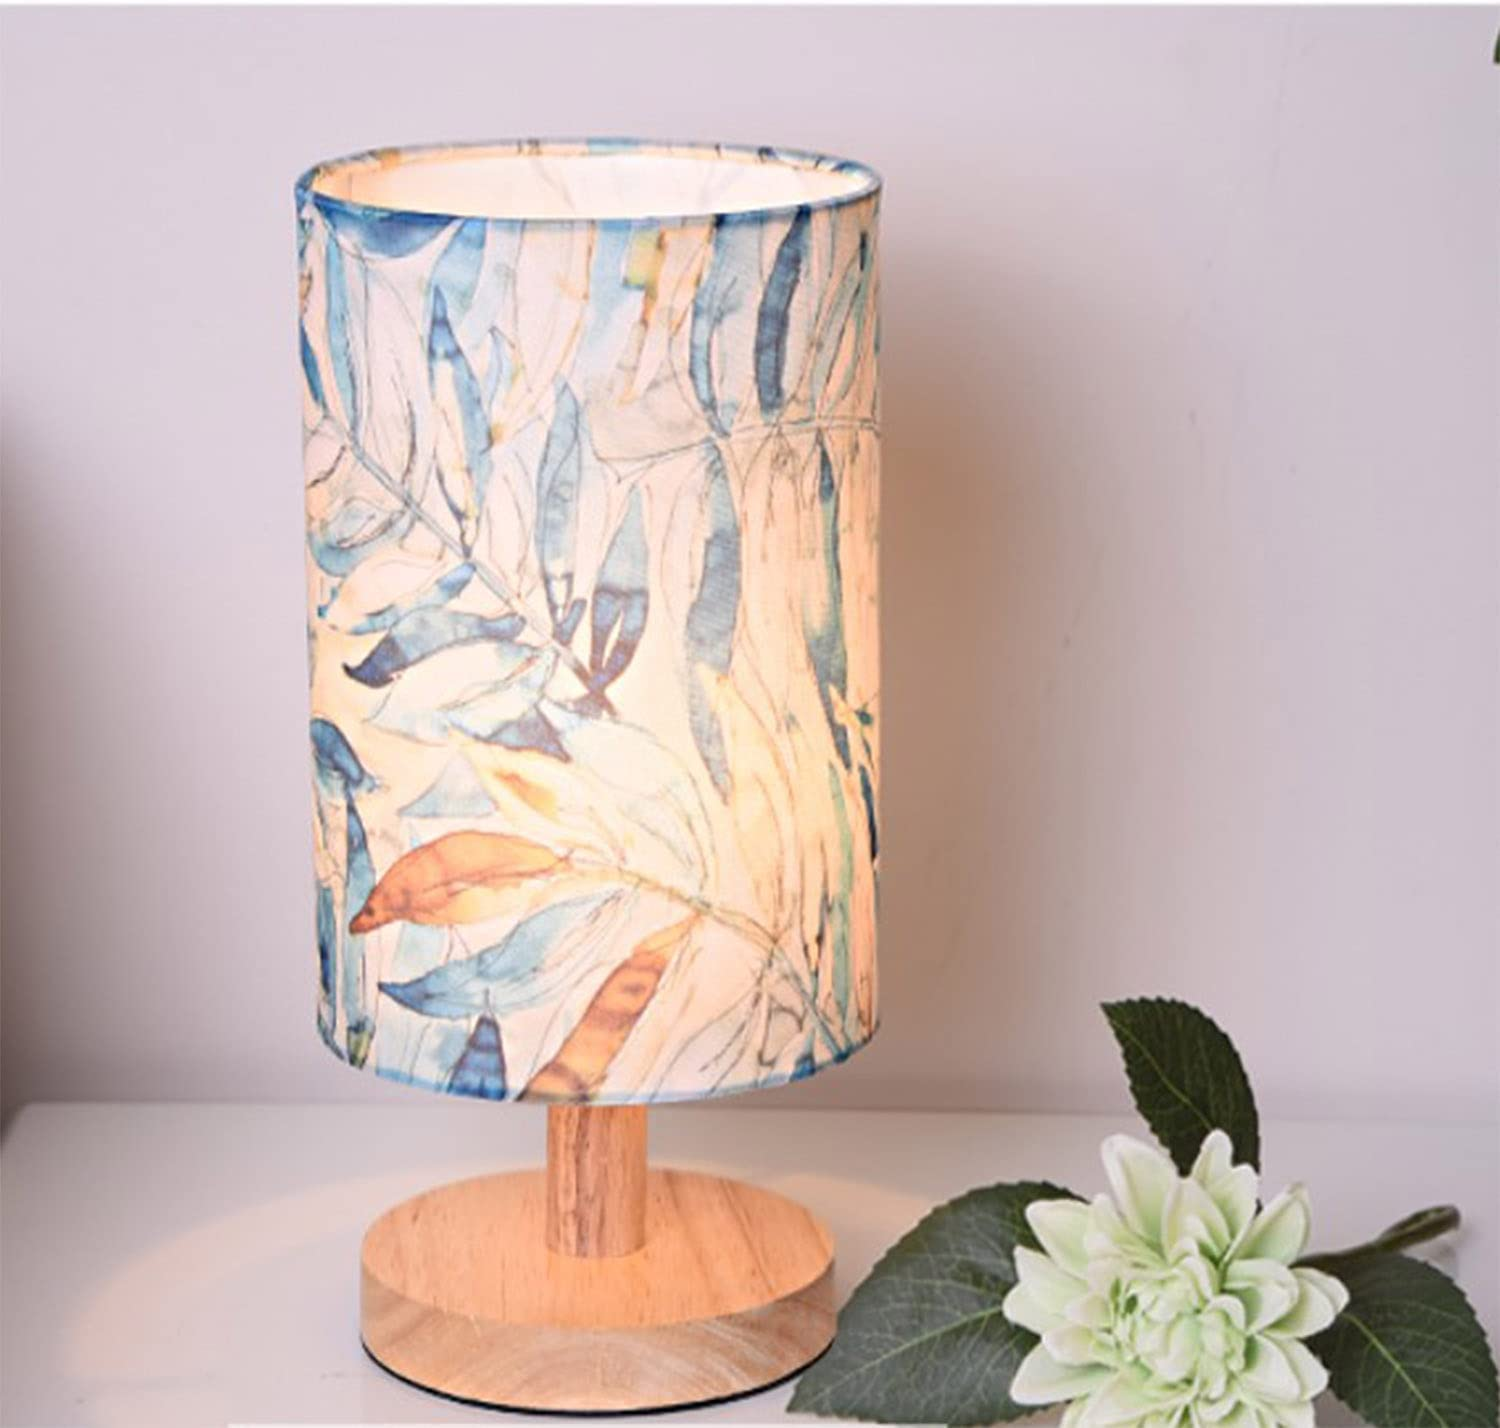 AFORTLO Table Desk Lamp, Small Romantic Decorative Nightstand Night Light Solid Wood Base Lamp for Bedroom,Living Room,End Table or Office with Bulb (Leaves)